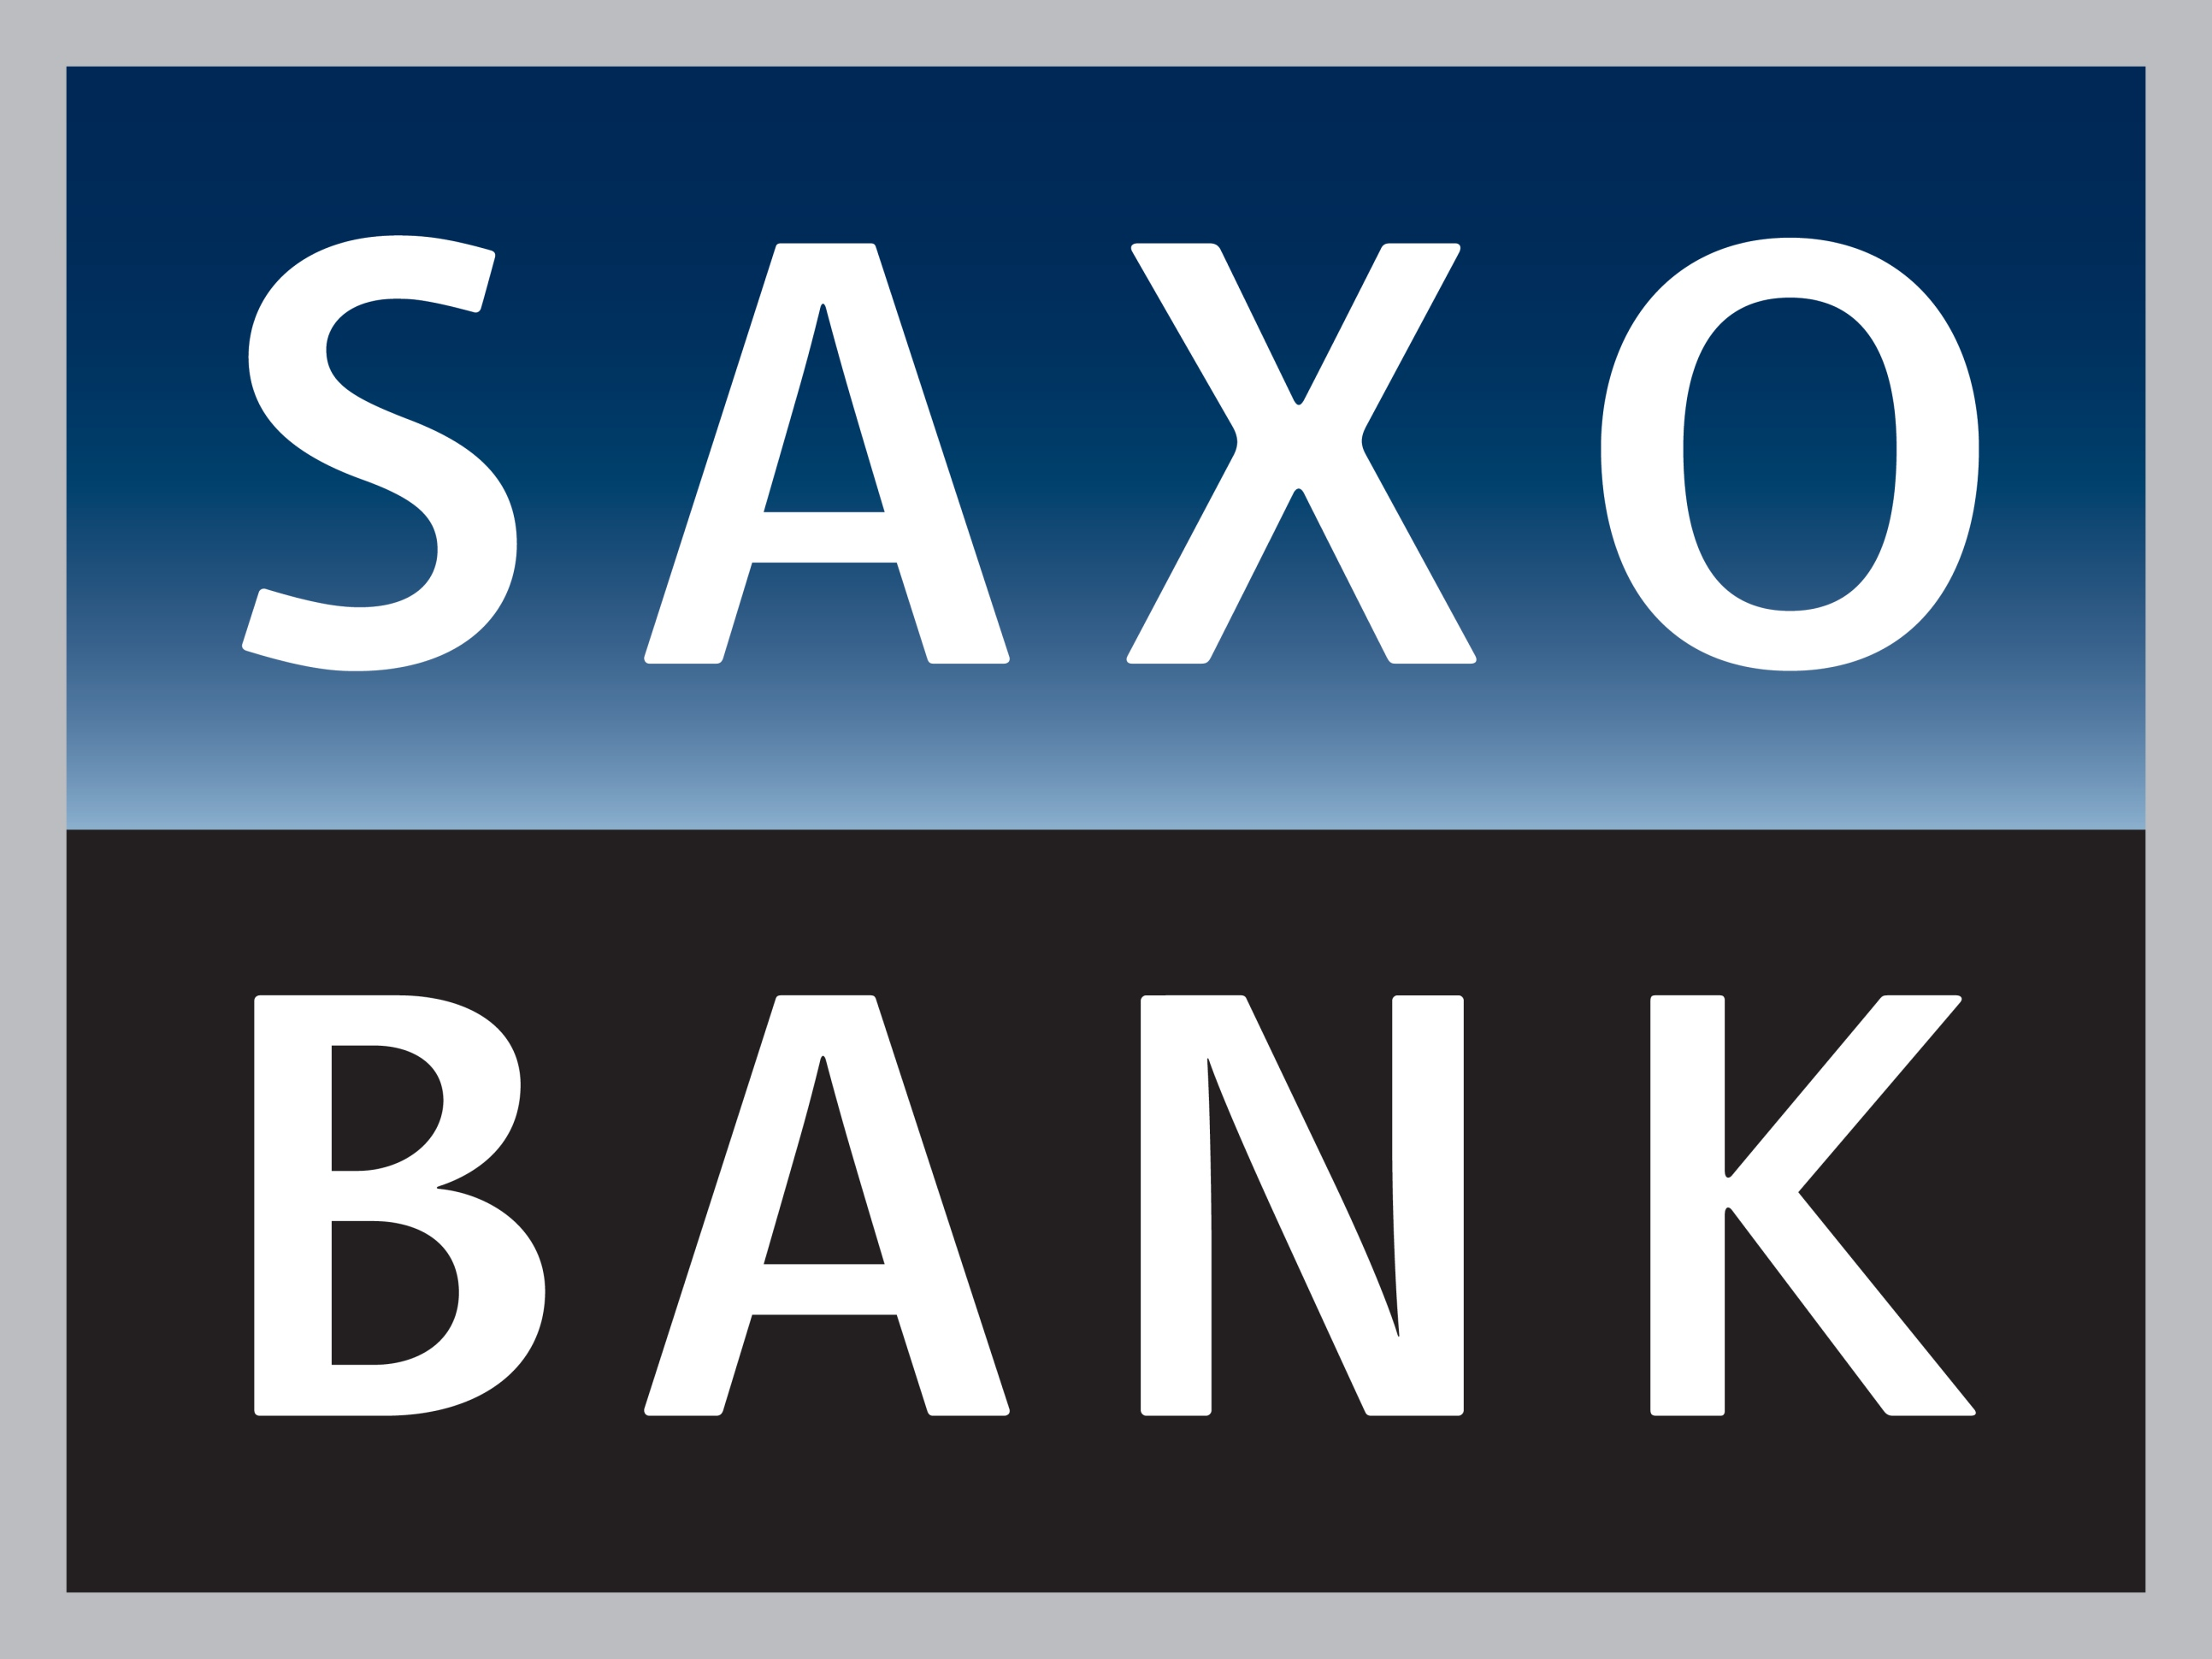 eToro vs. Saxo: Ultimate Broker Comparison For New Traders